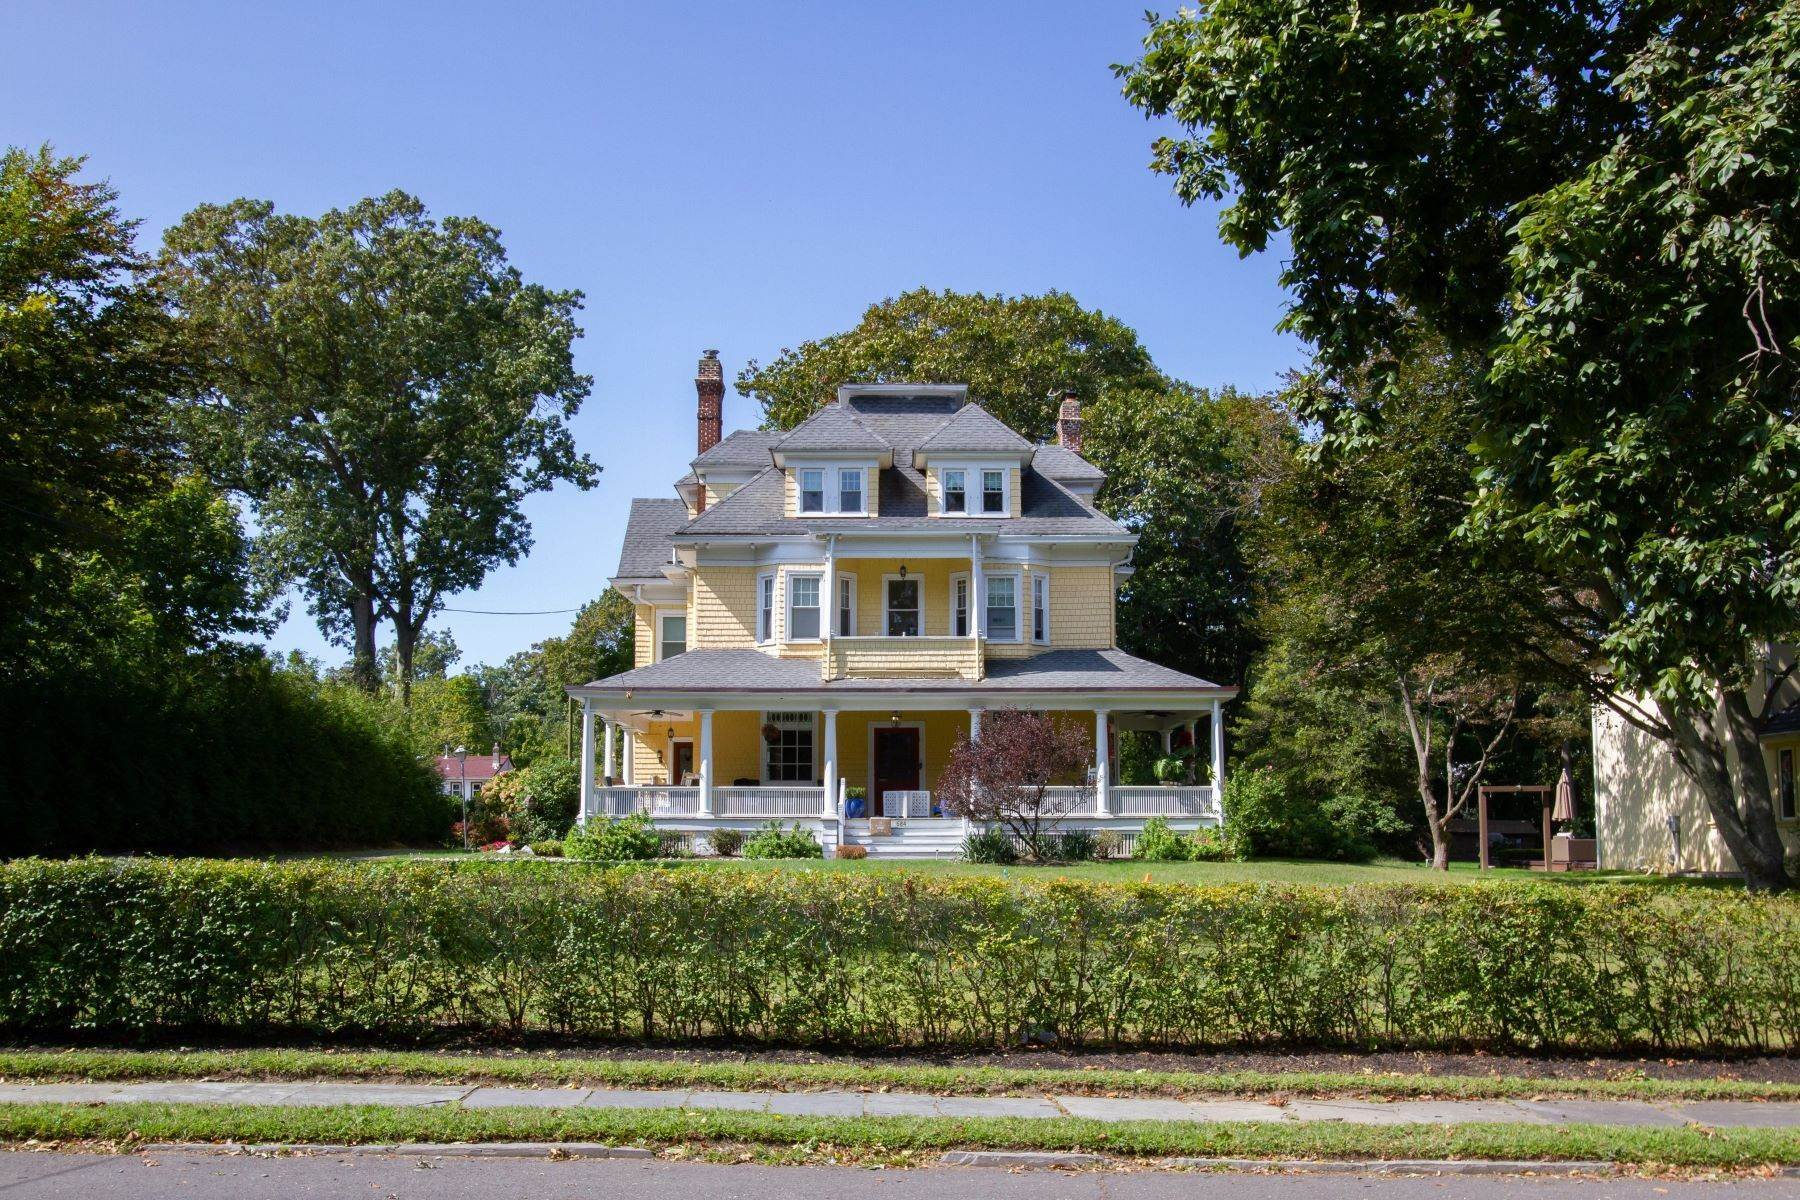 Single Family Homes for Sale at Elegant Victorian Home 684 Westwood Avenue Long Branch, New Jersey 07740 United States